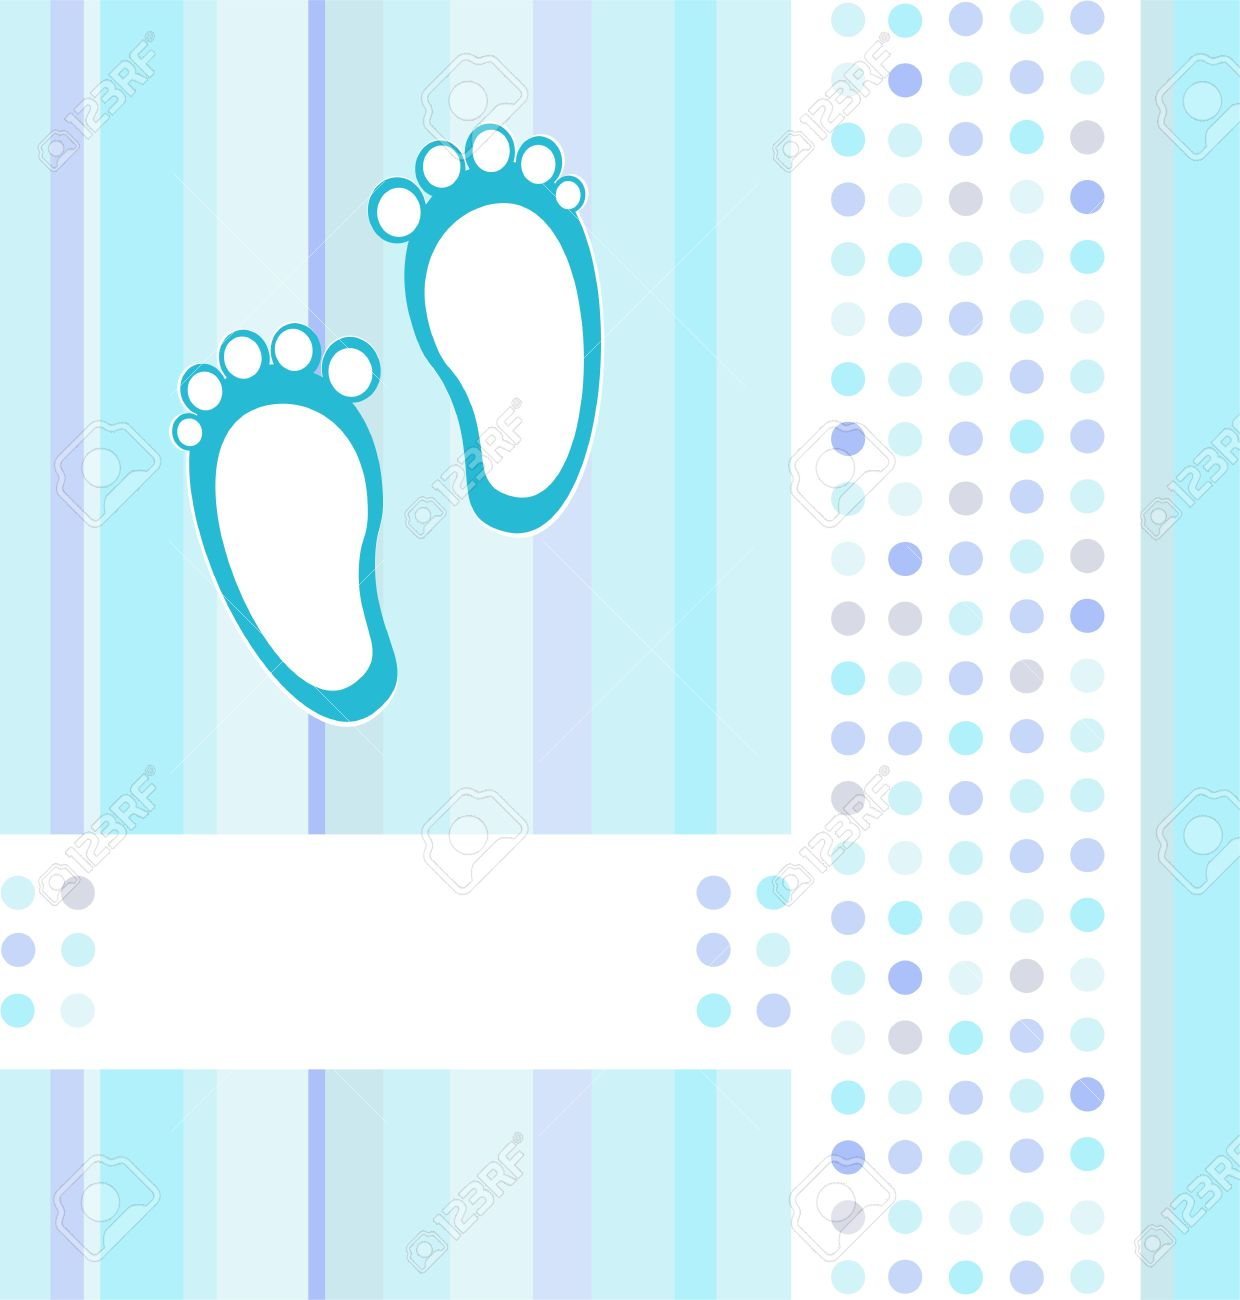 Baby boy background wallpaper baby boy background images baby boy - Baby Boy Announcement Blue Card Background Wallpaper Vector Illustration Stock Vector 10570844